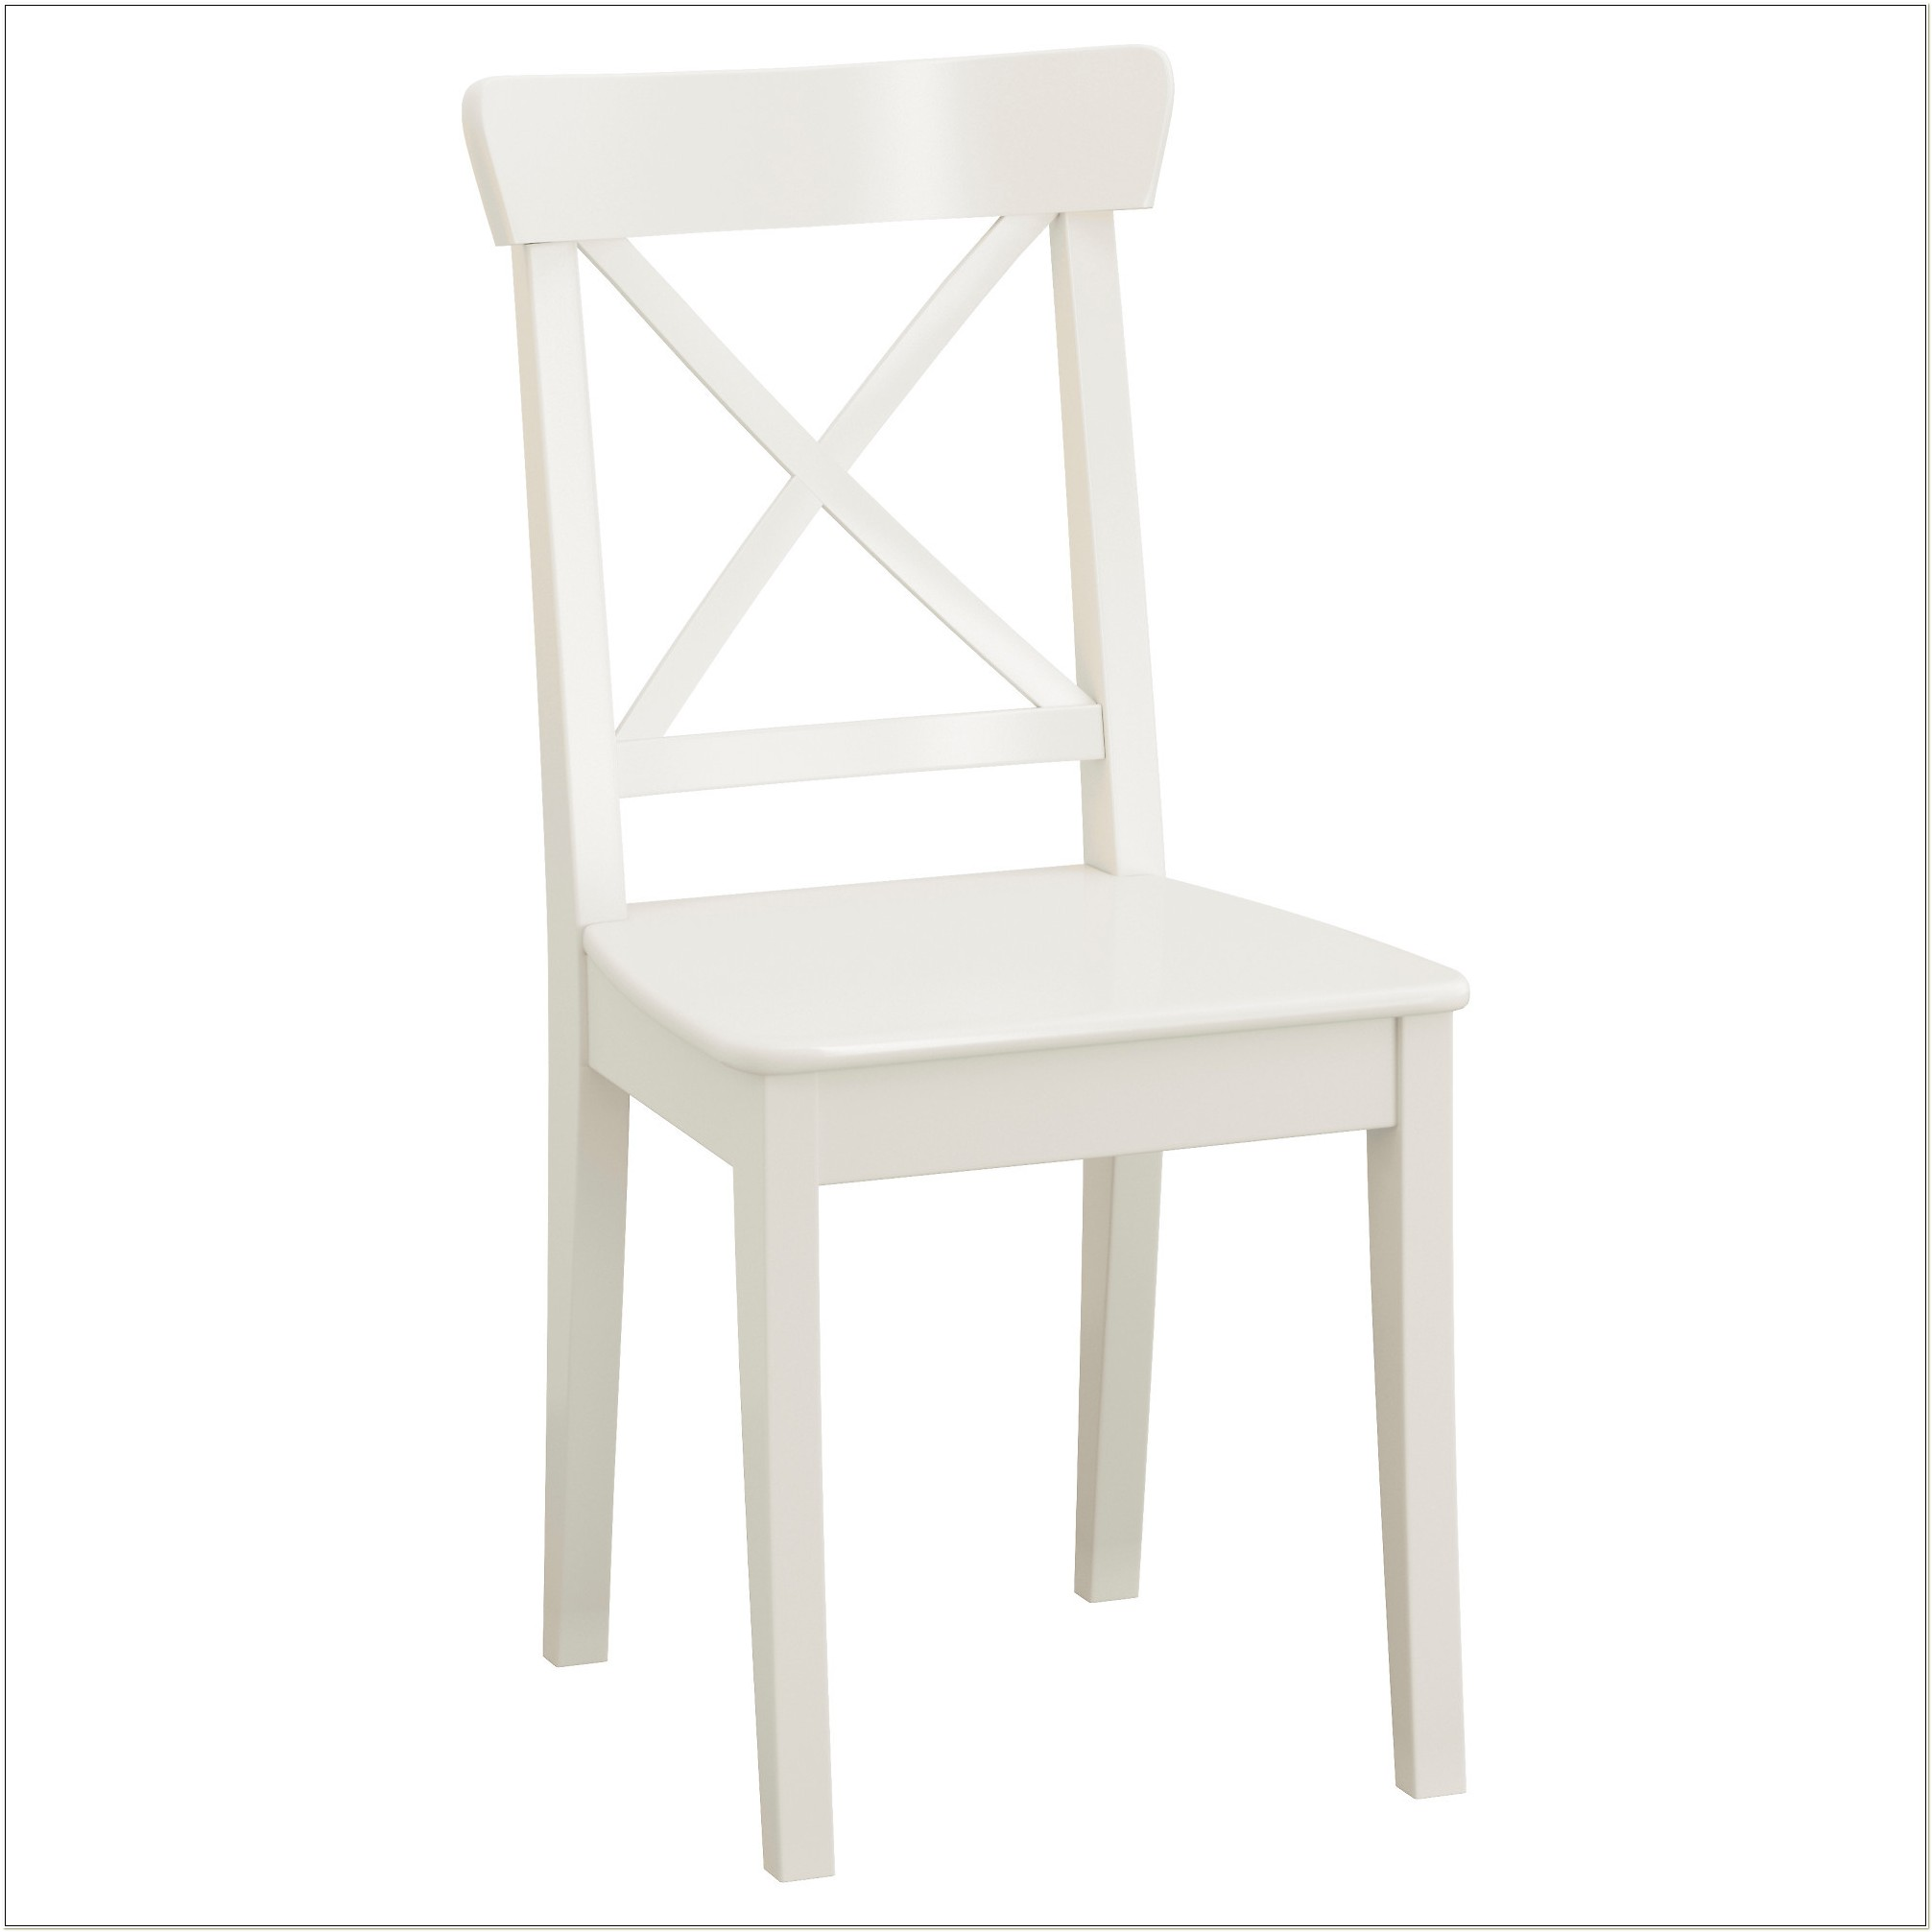 Ikea White Leather Dining Chair